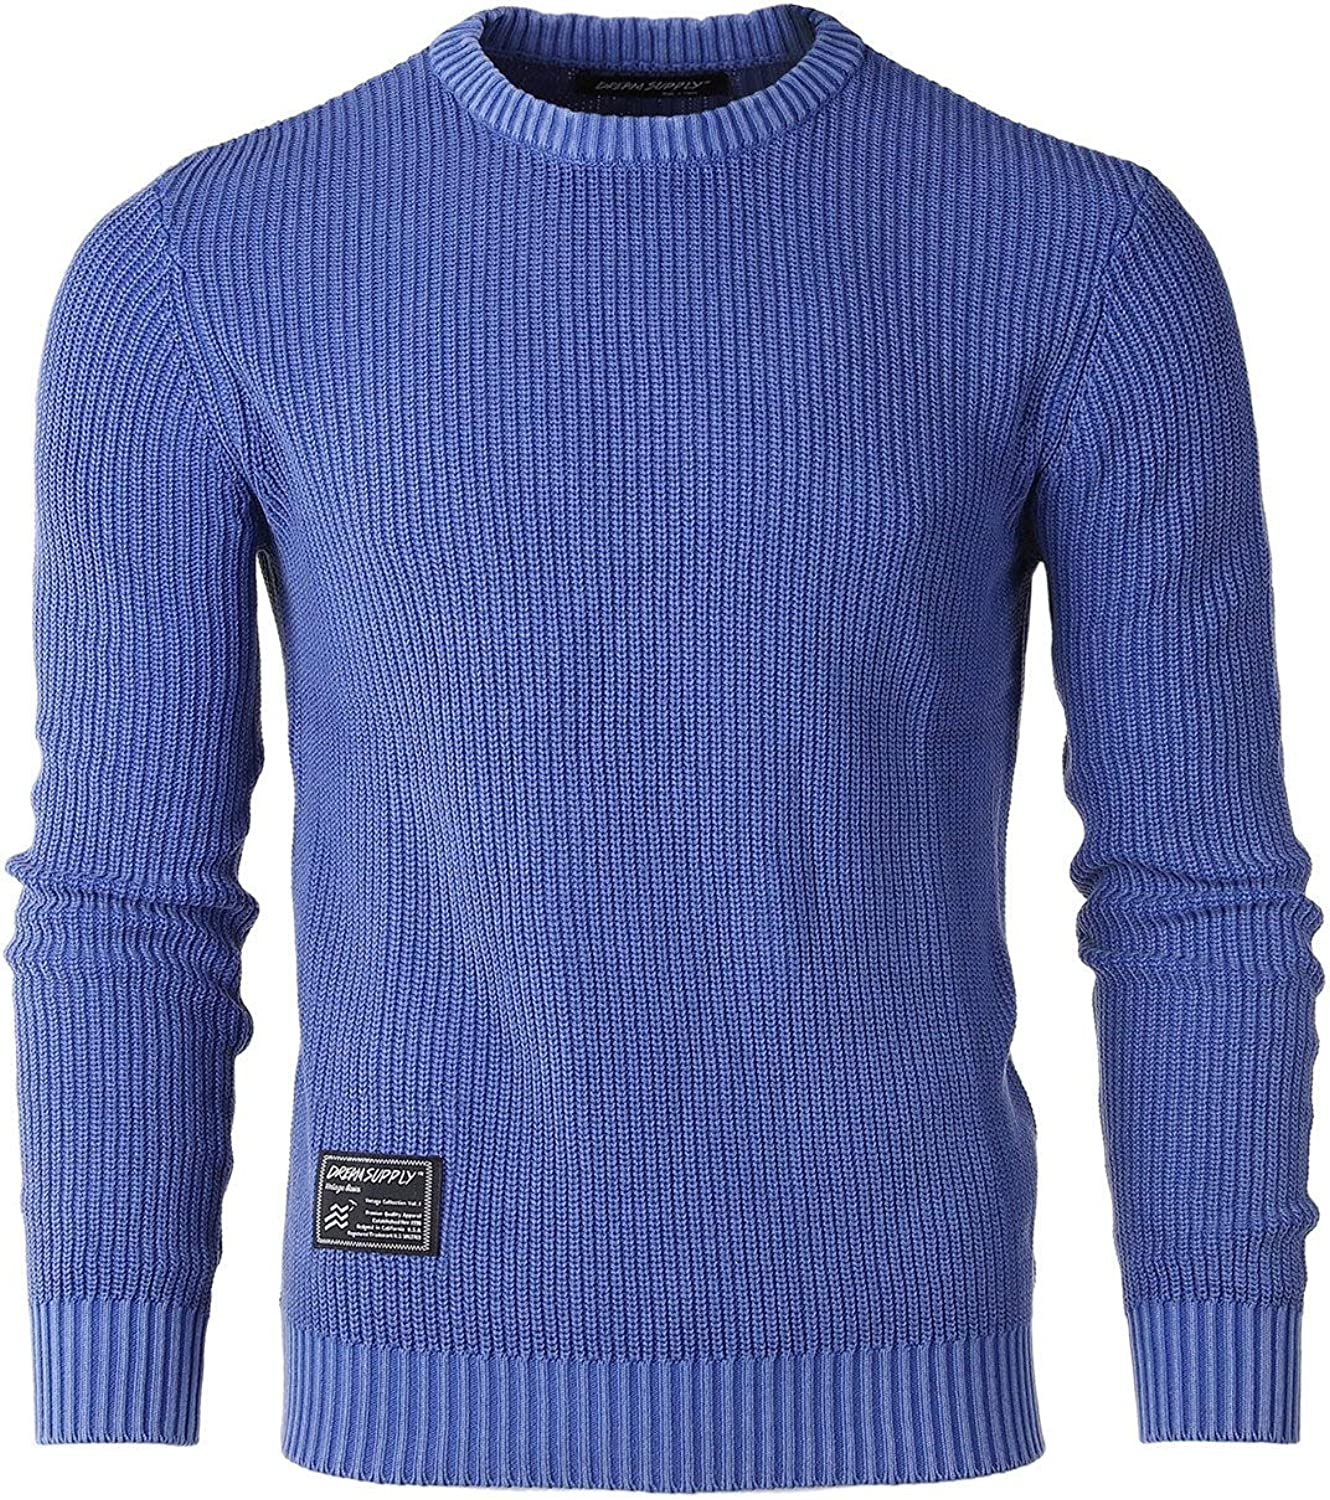 ZIMEGO Men's Classic Vintage Color Wash Ribbed Crew Neck Pullover Casual Sweater